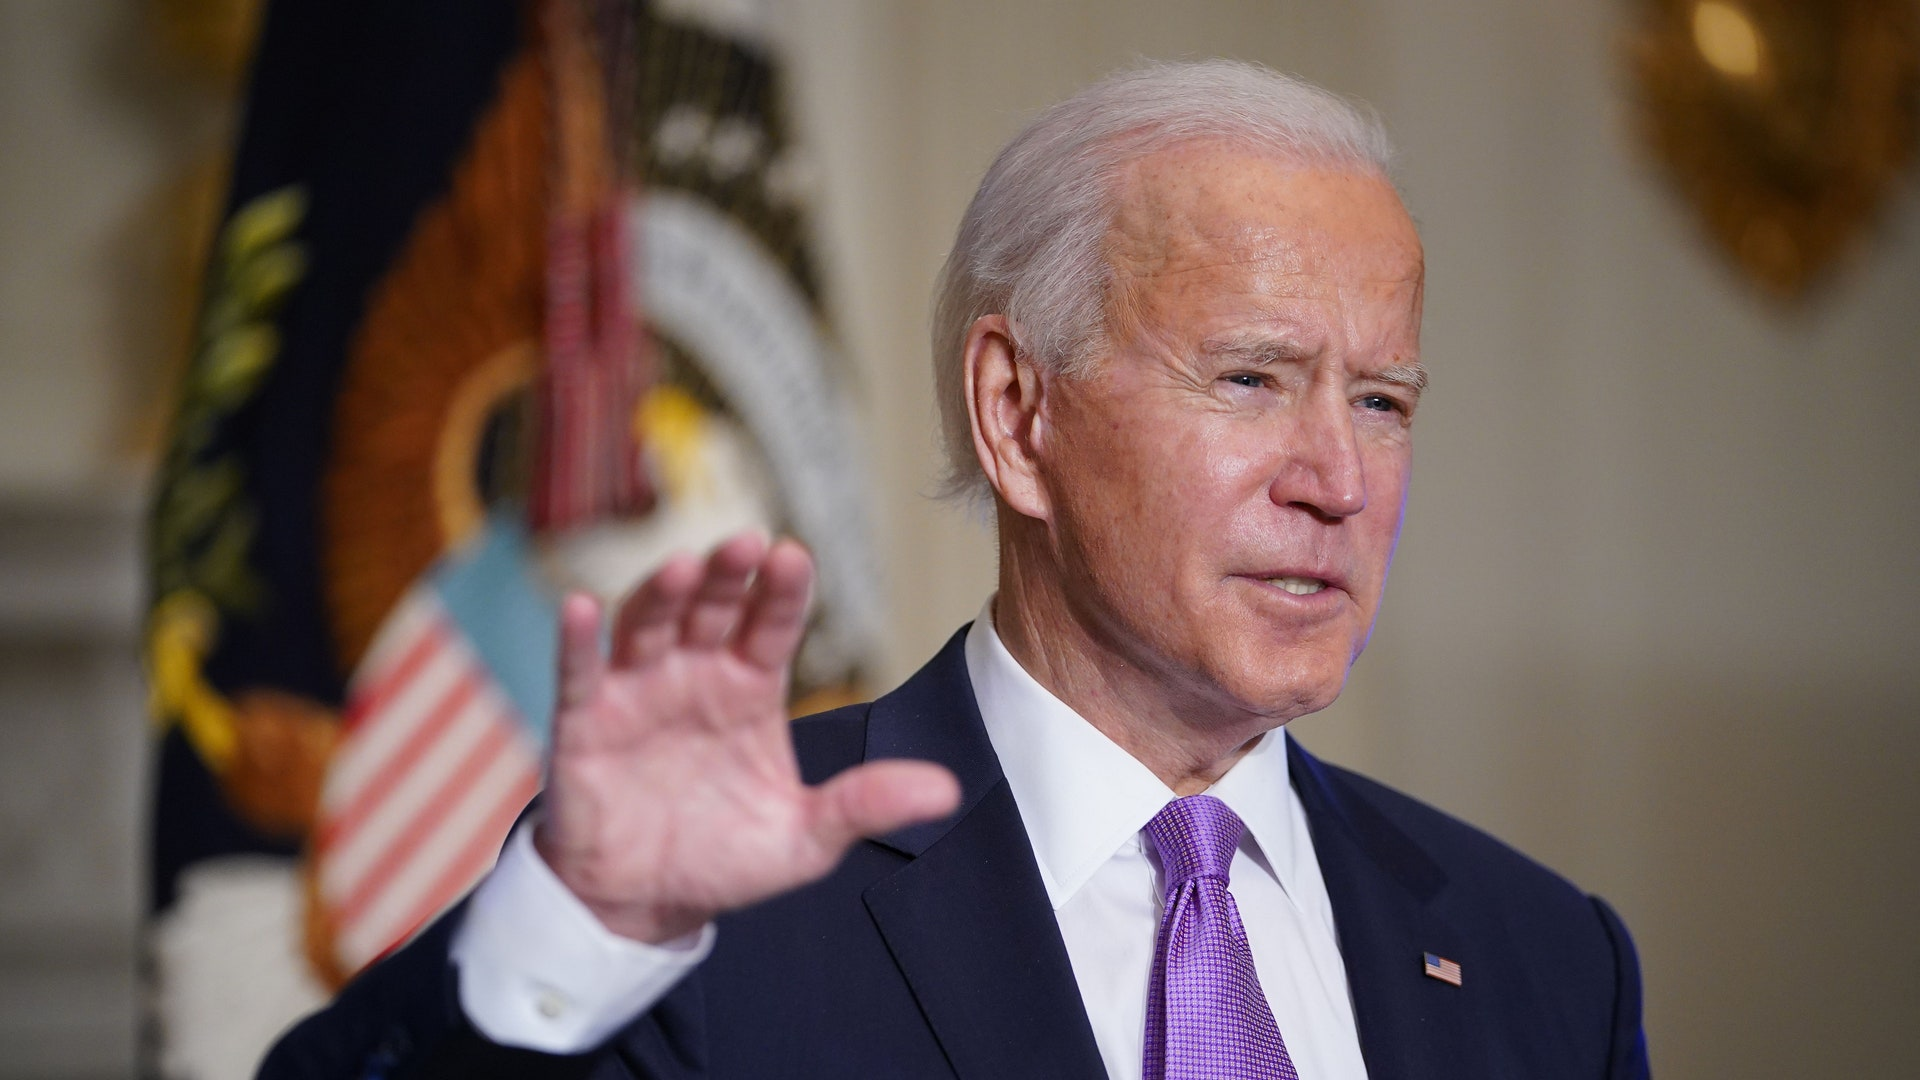 Joe Biden earns less profit as President of the United States than Jeff Bezos in 5 seconds